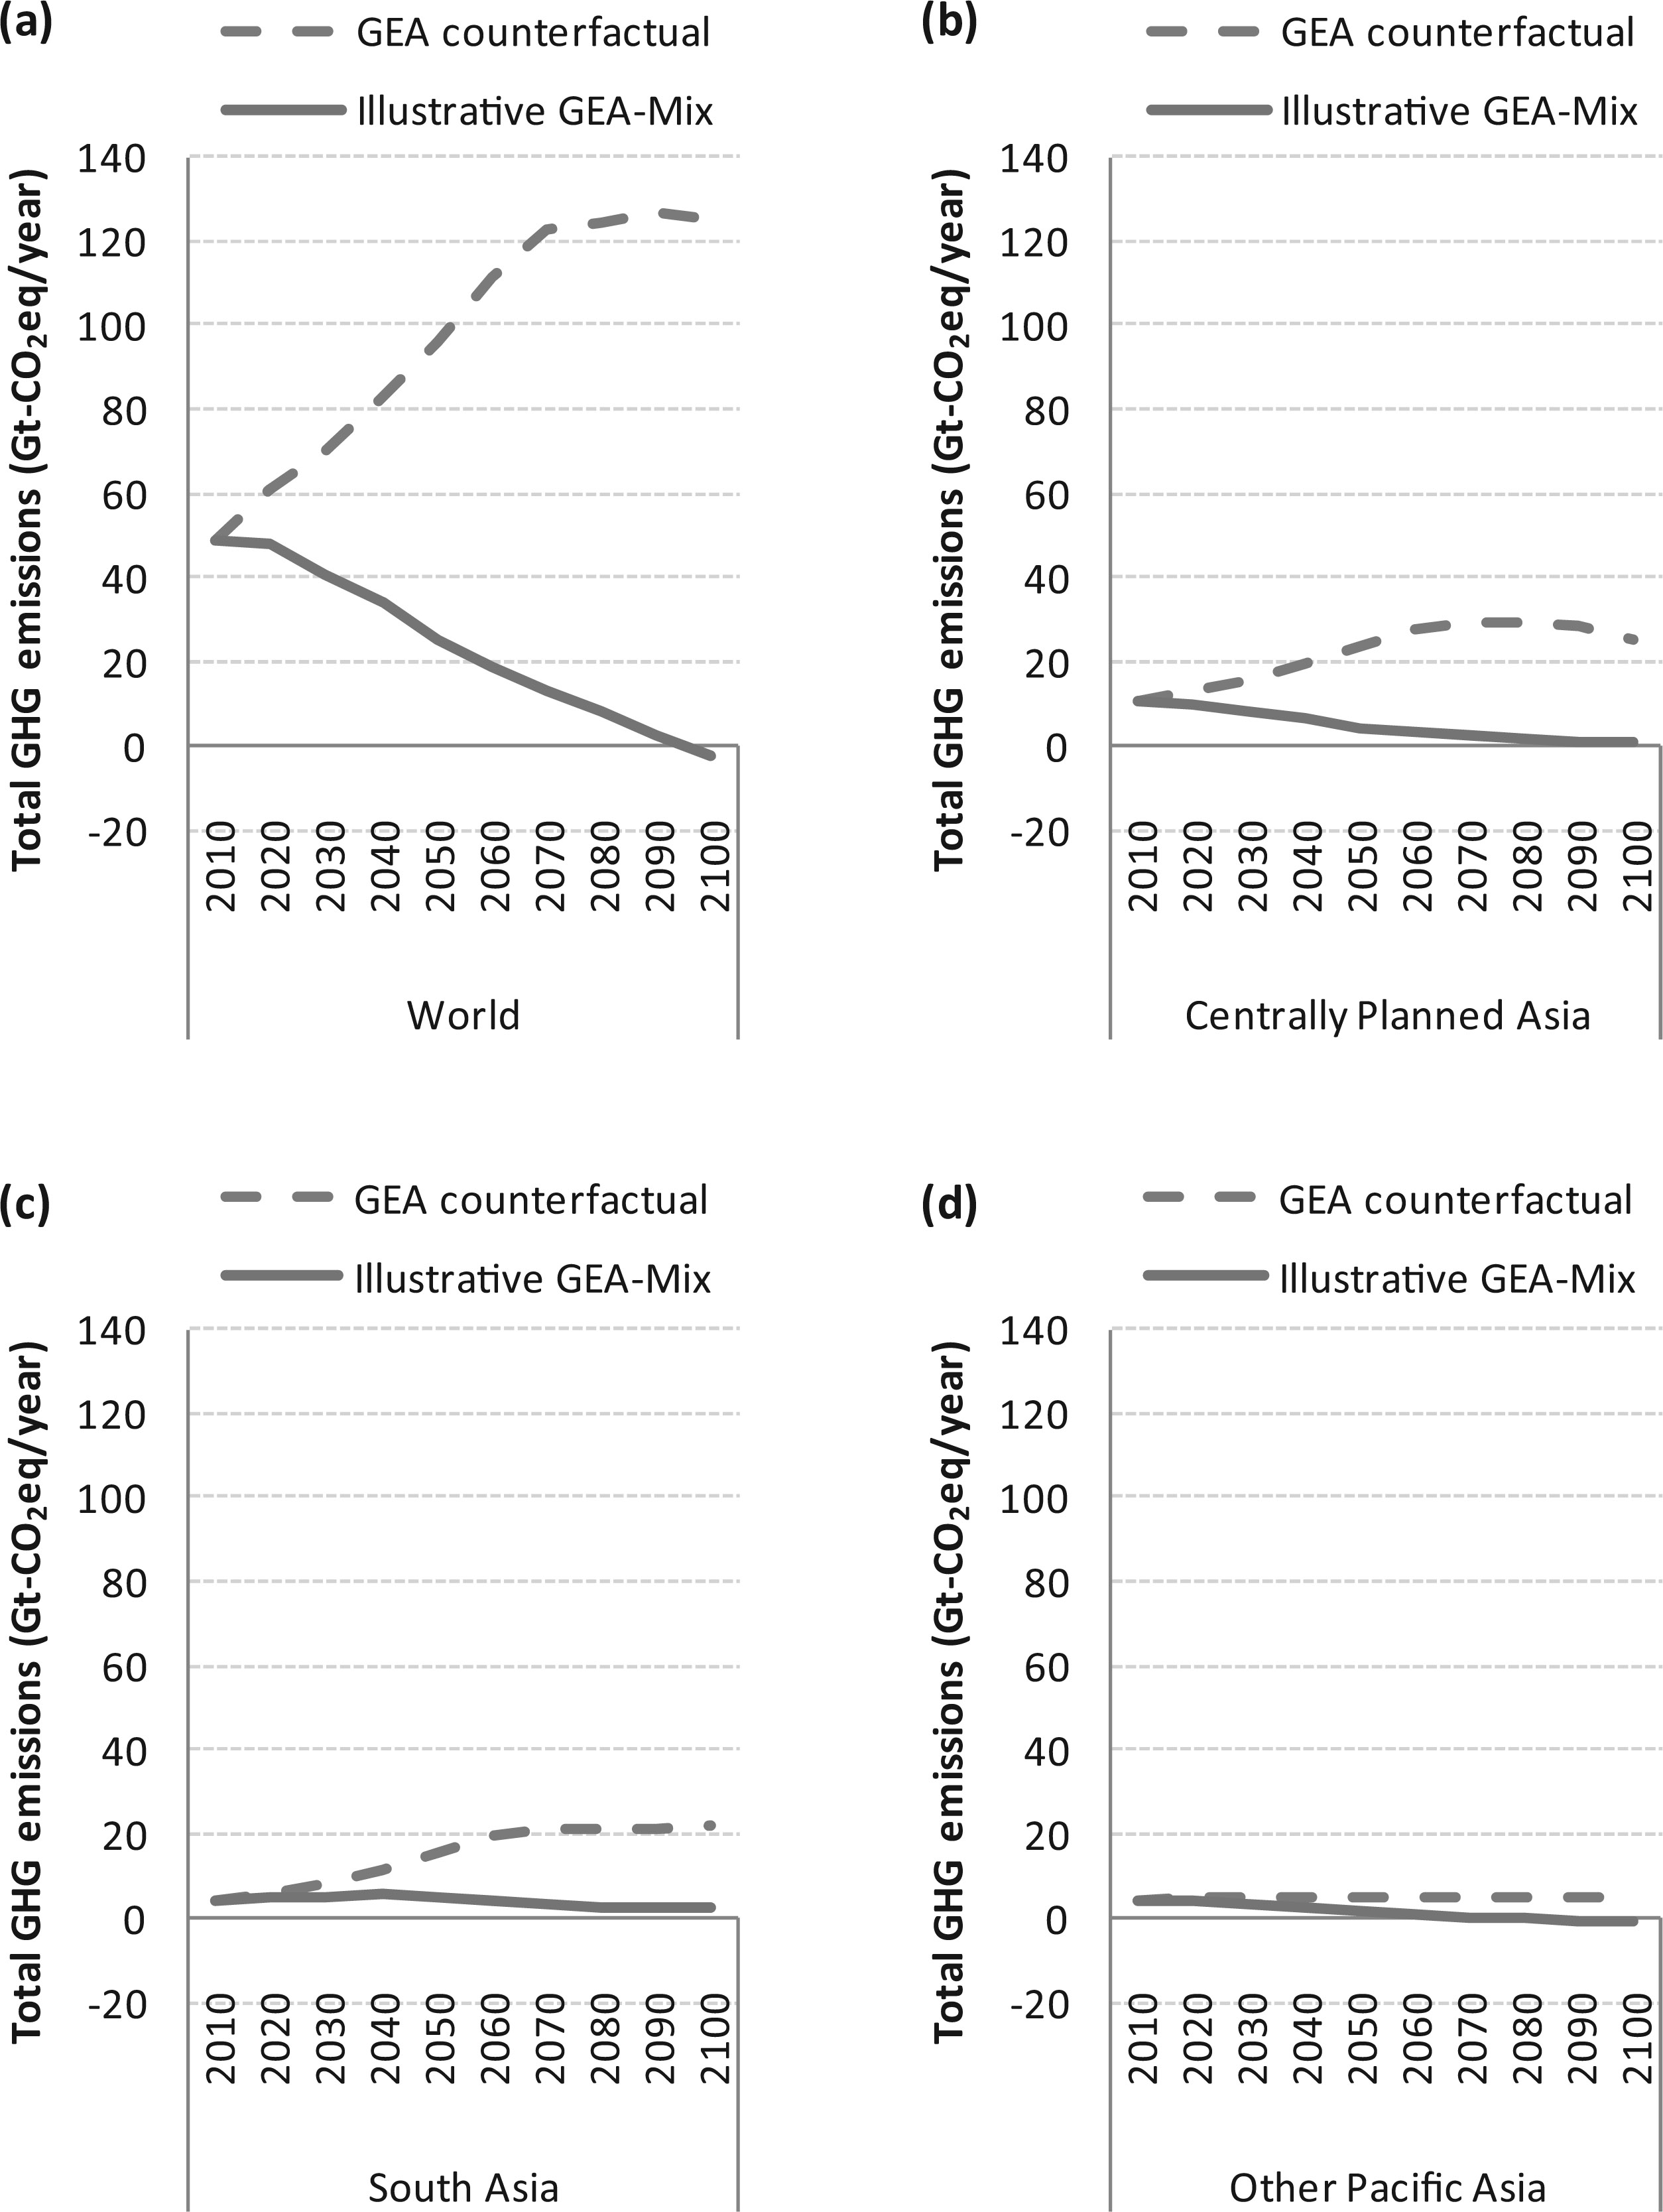 Total GHG emissions in the world (a) Centrally Planned Asia (b) South Asia (c) and Other Pacific Asia (d) in the GEA counterfactual and illustrative GEA-Mix pathways